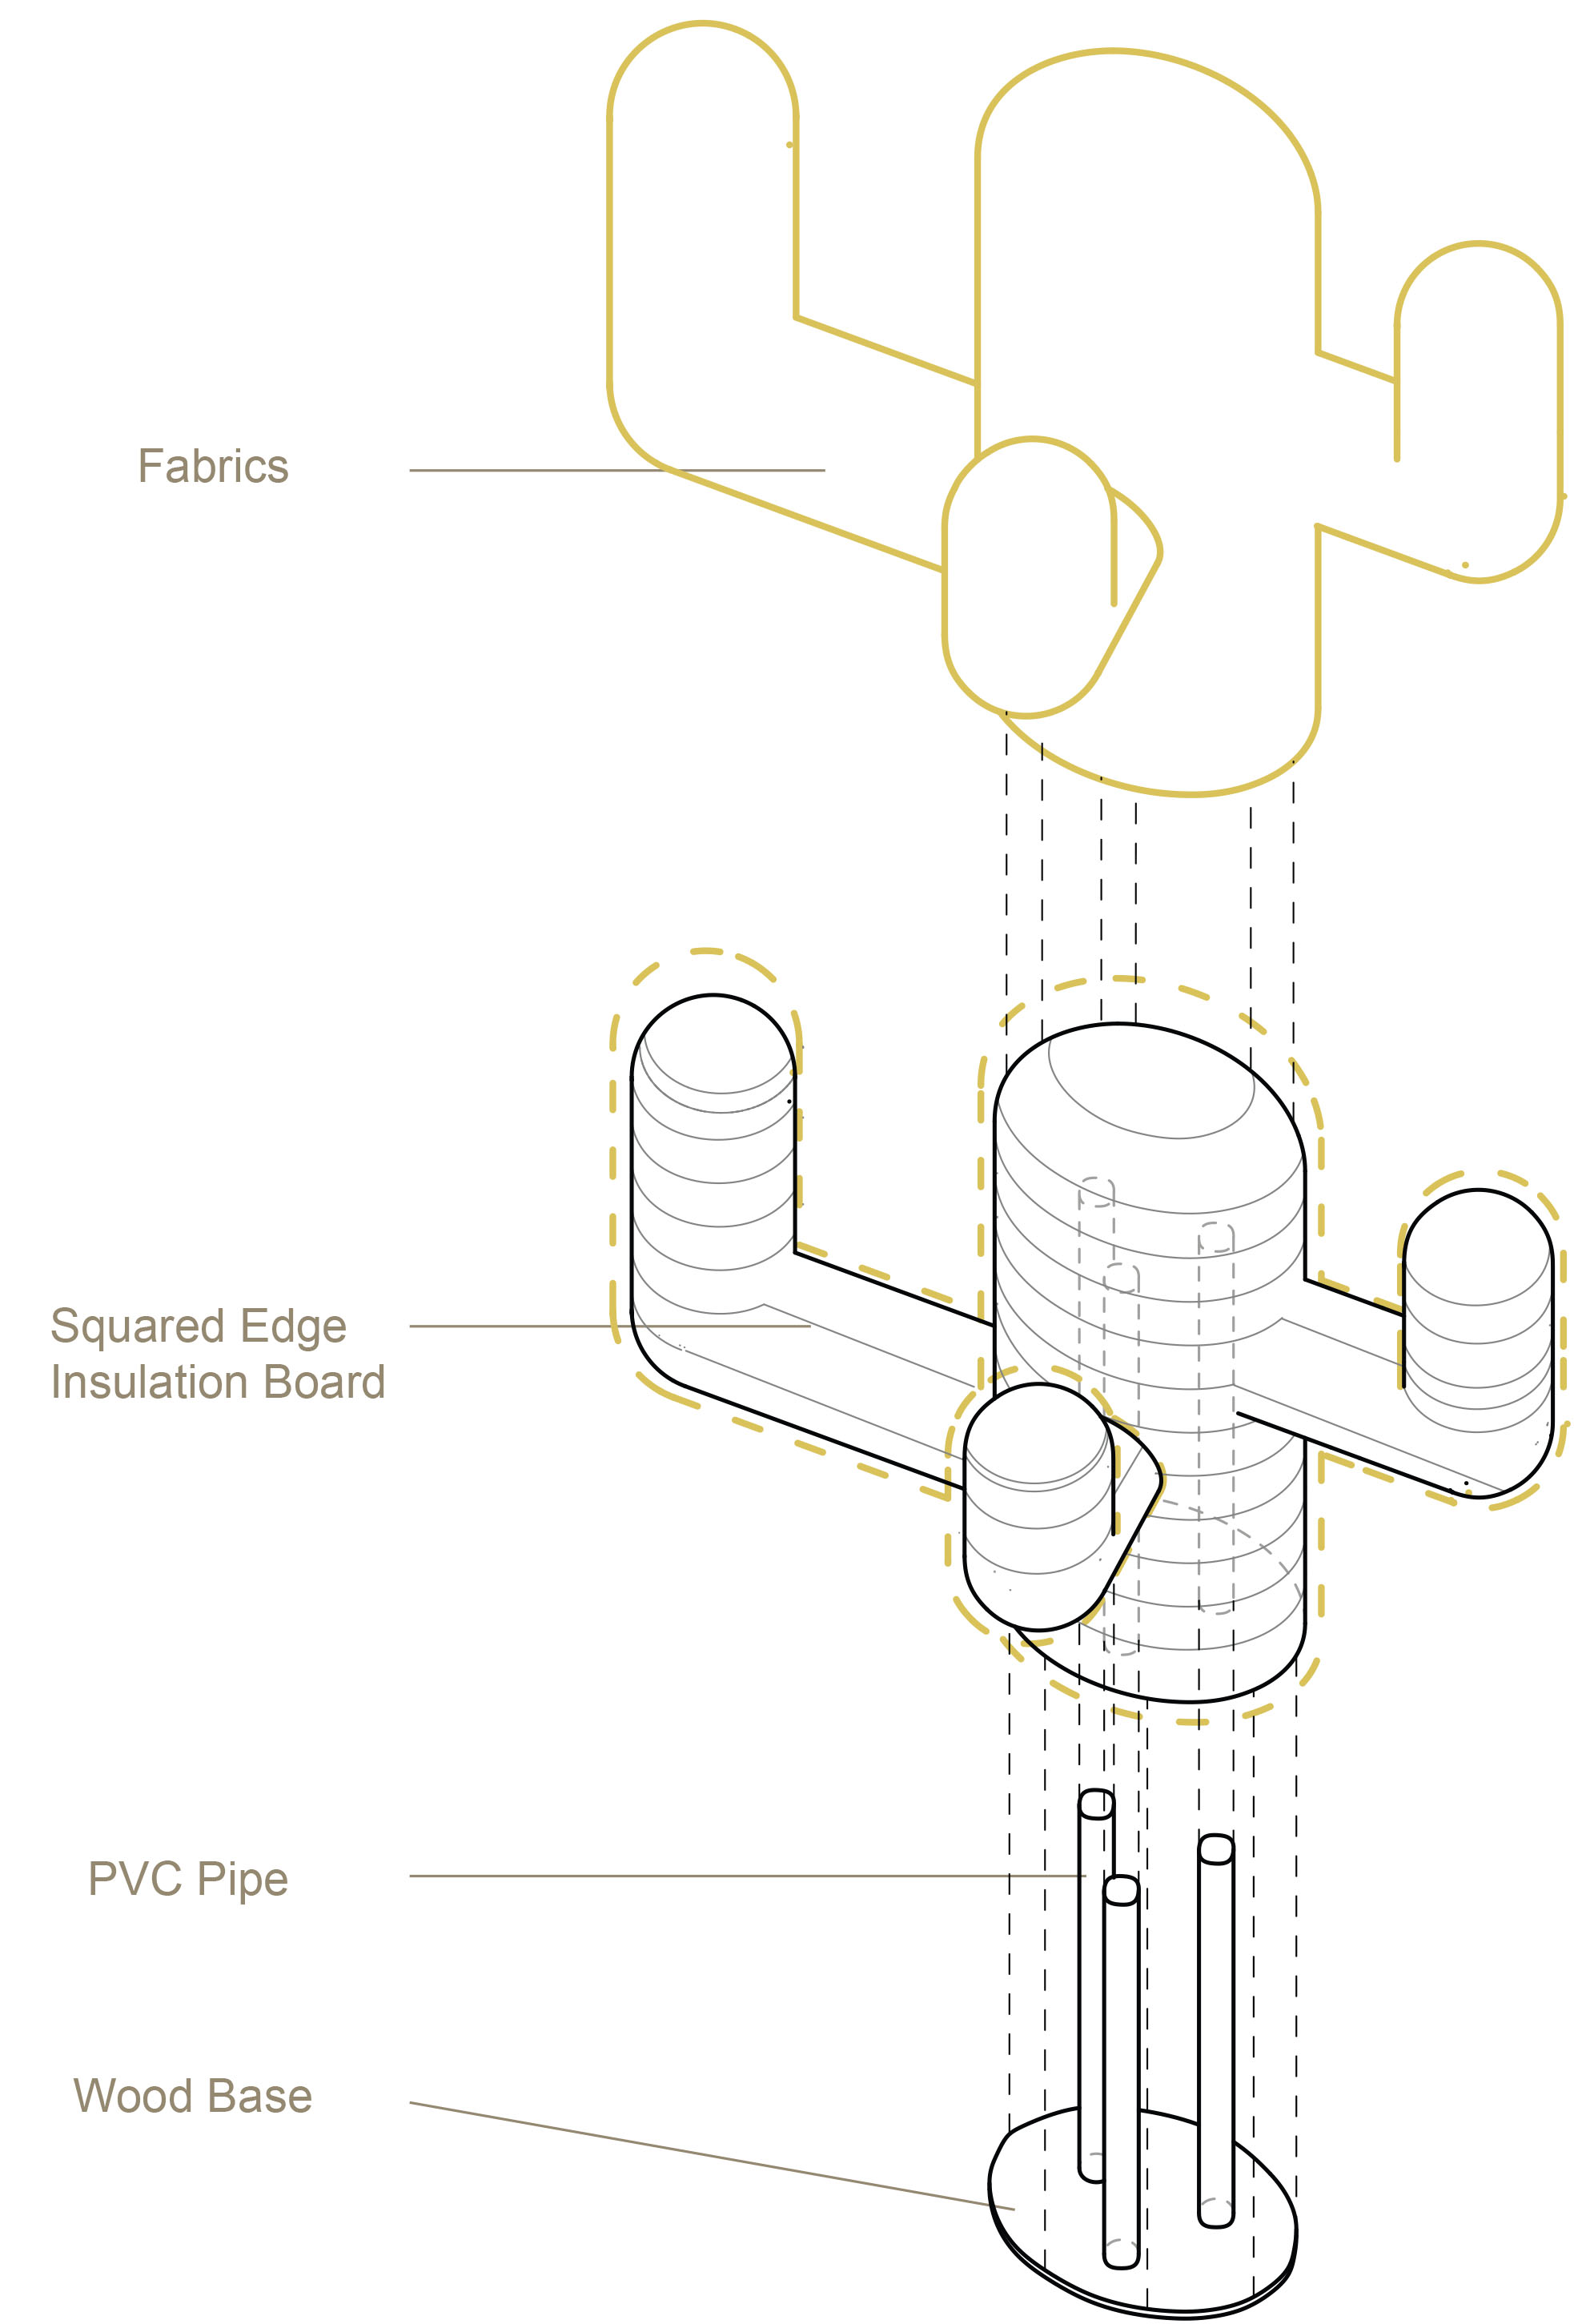 Diagram_Construction Details_Cactus.jpg